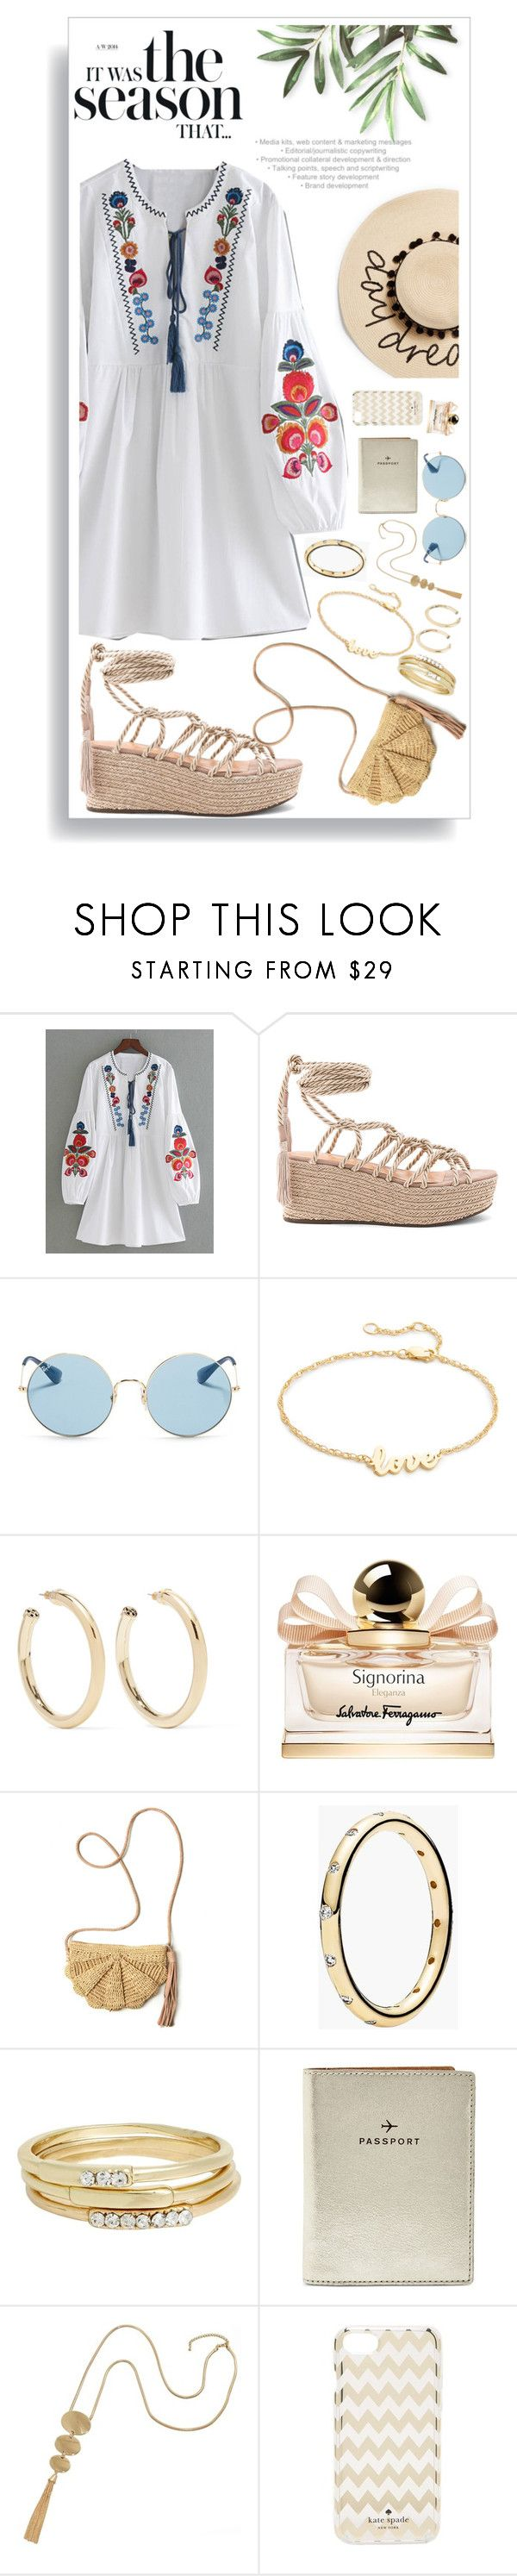 """""""Untitled #1512"""" by style-and-chic-boutique ❤ liked on Polyvore featuring Schutz, Ray-Ban, Jennifer Zeuner, Kenneth Jay Lane, Salvatore Ferragamo, Mar y Sol, Pandora, Jules Smith, FOSSIL and Kate Spade"""